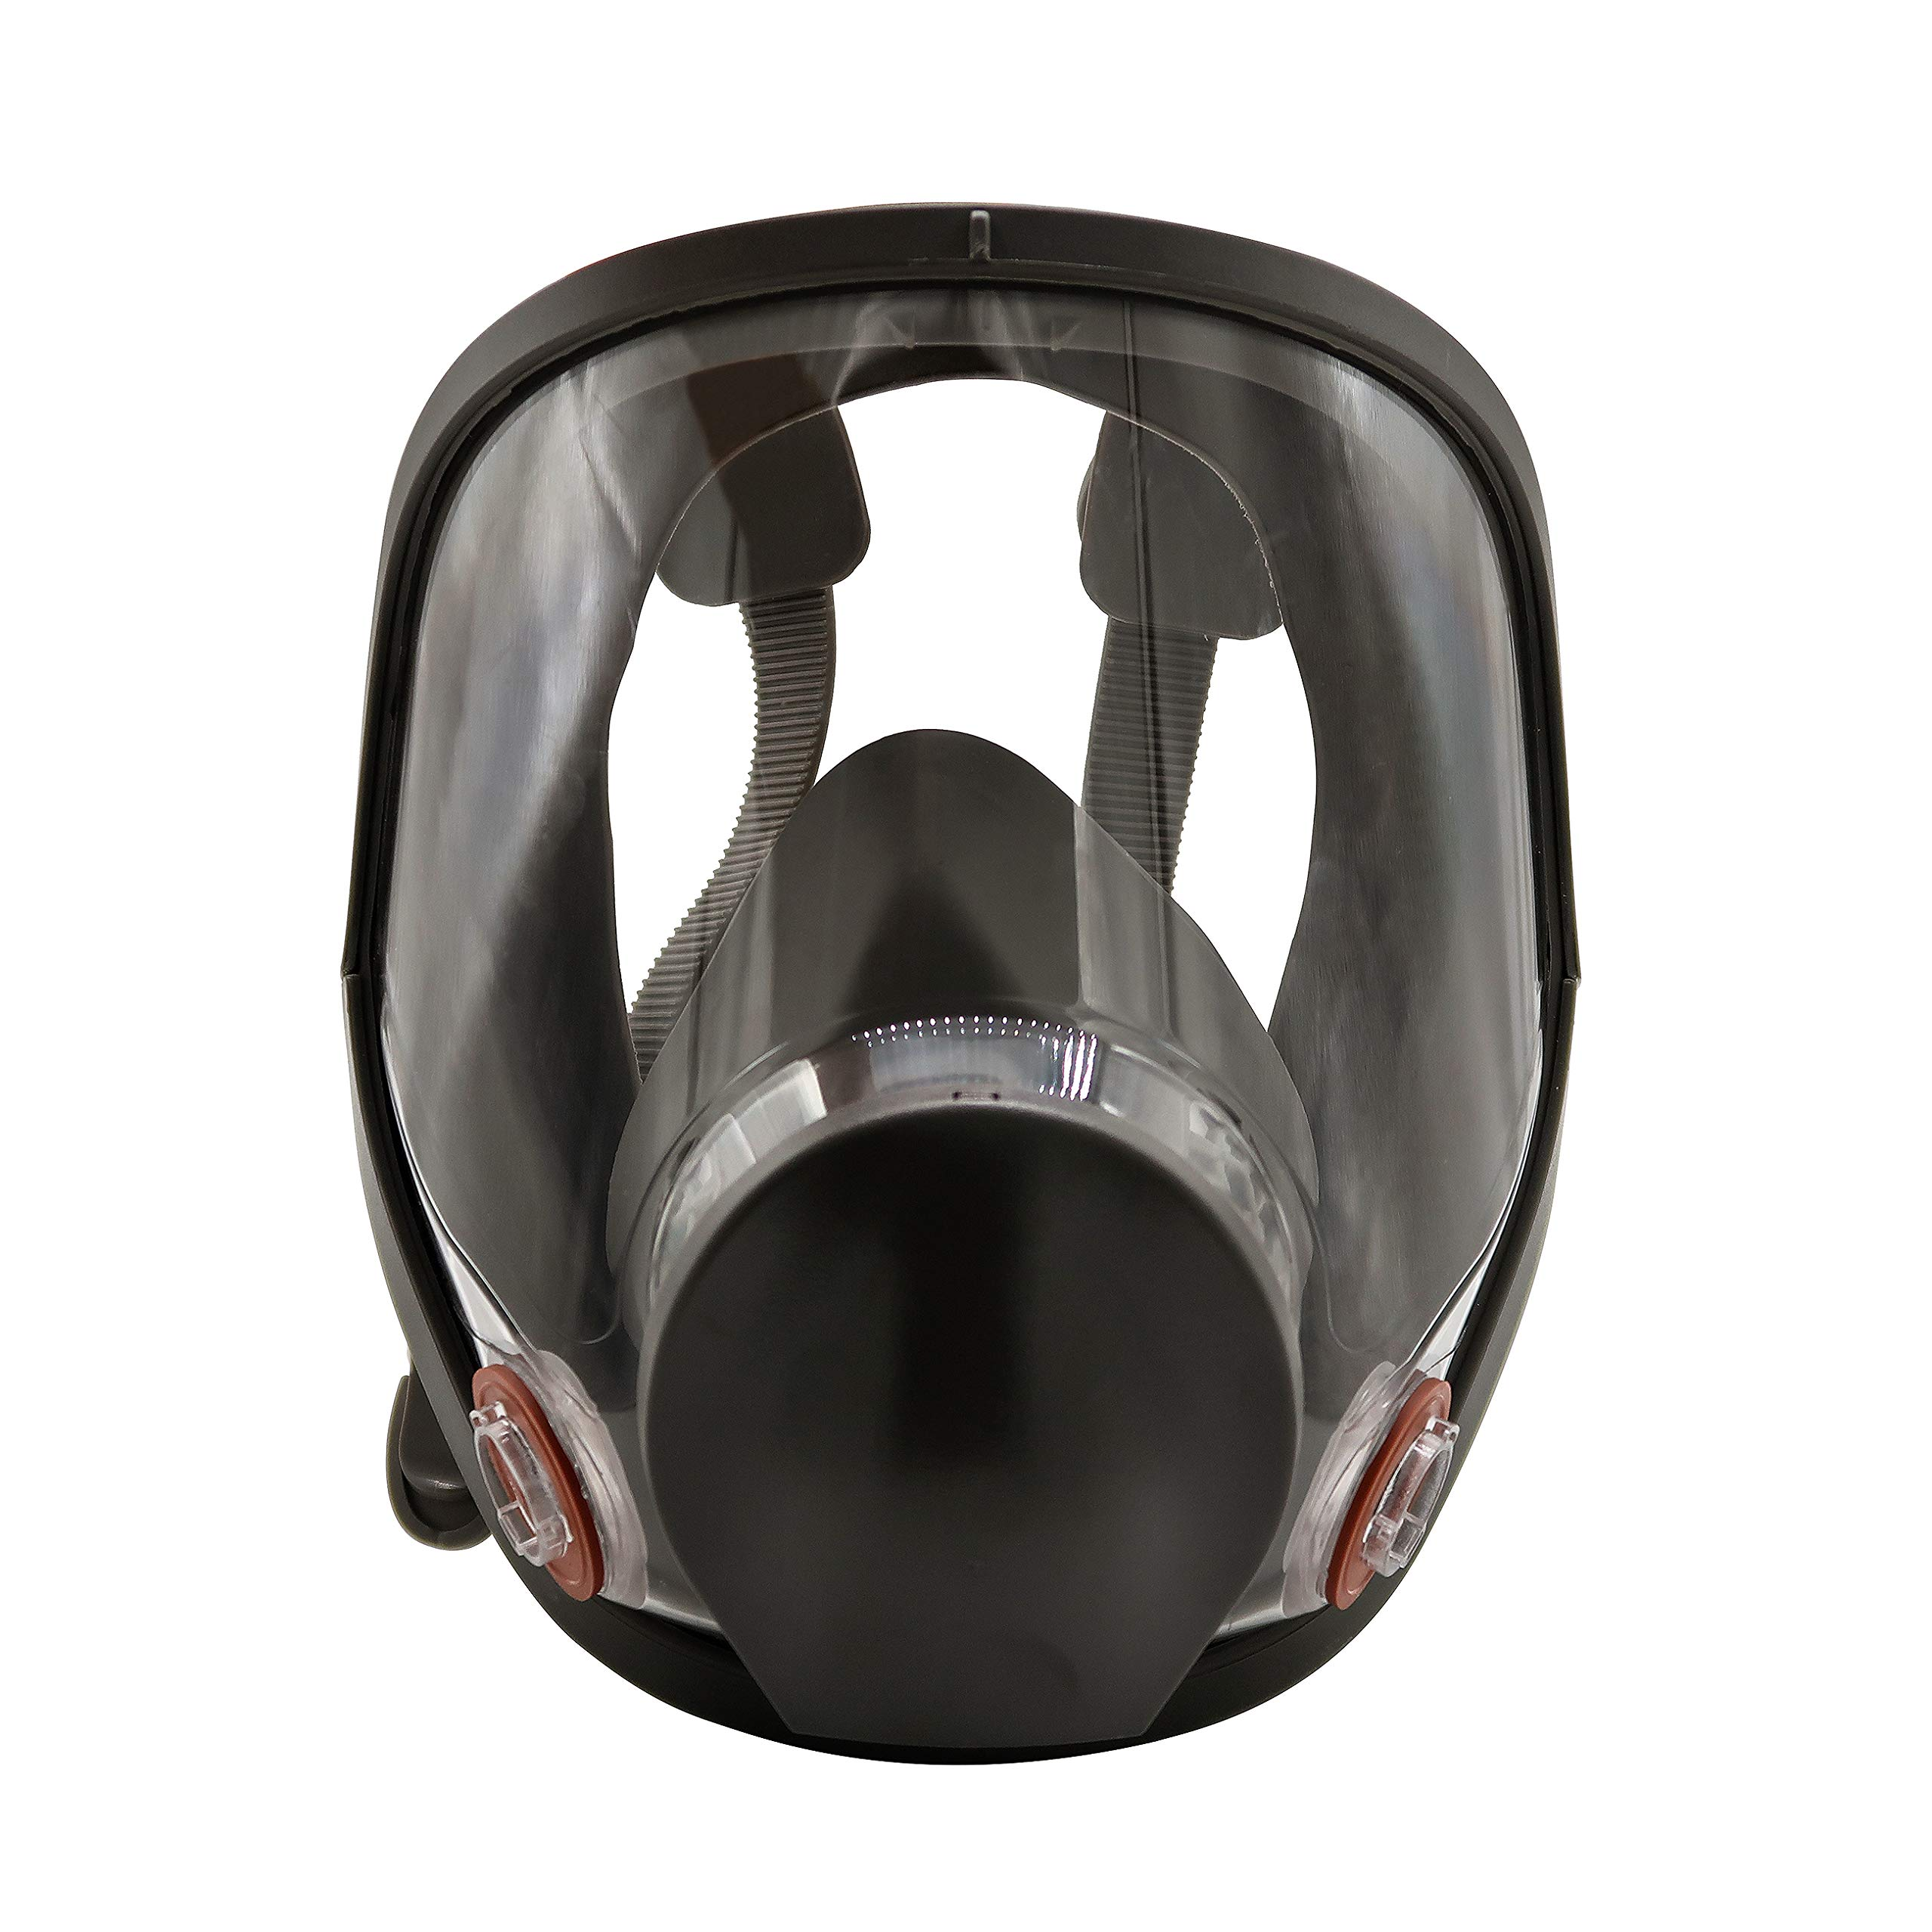 Muhubaih Full Face Respirator Mask For 6800 Masks Organic Vapors N95 Level Silicone Respirator Mask,Wide Field of View Full Face Dust Gas Mask for Paint Pesticide Chemical Formaldehyde Respiratory by Muhubaih